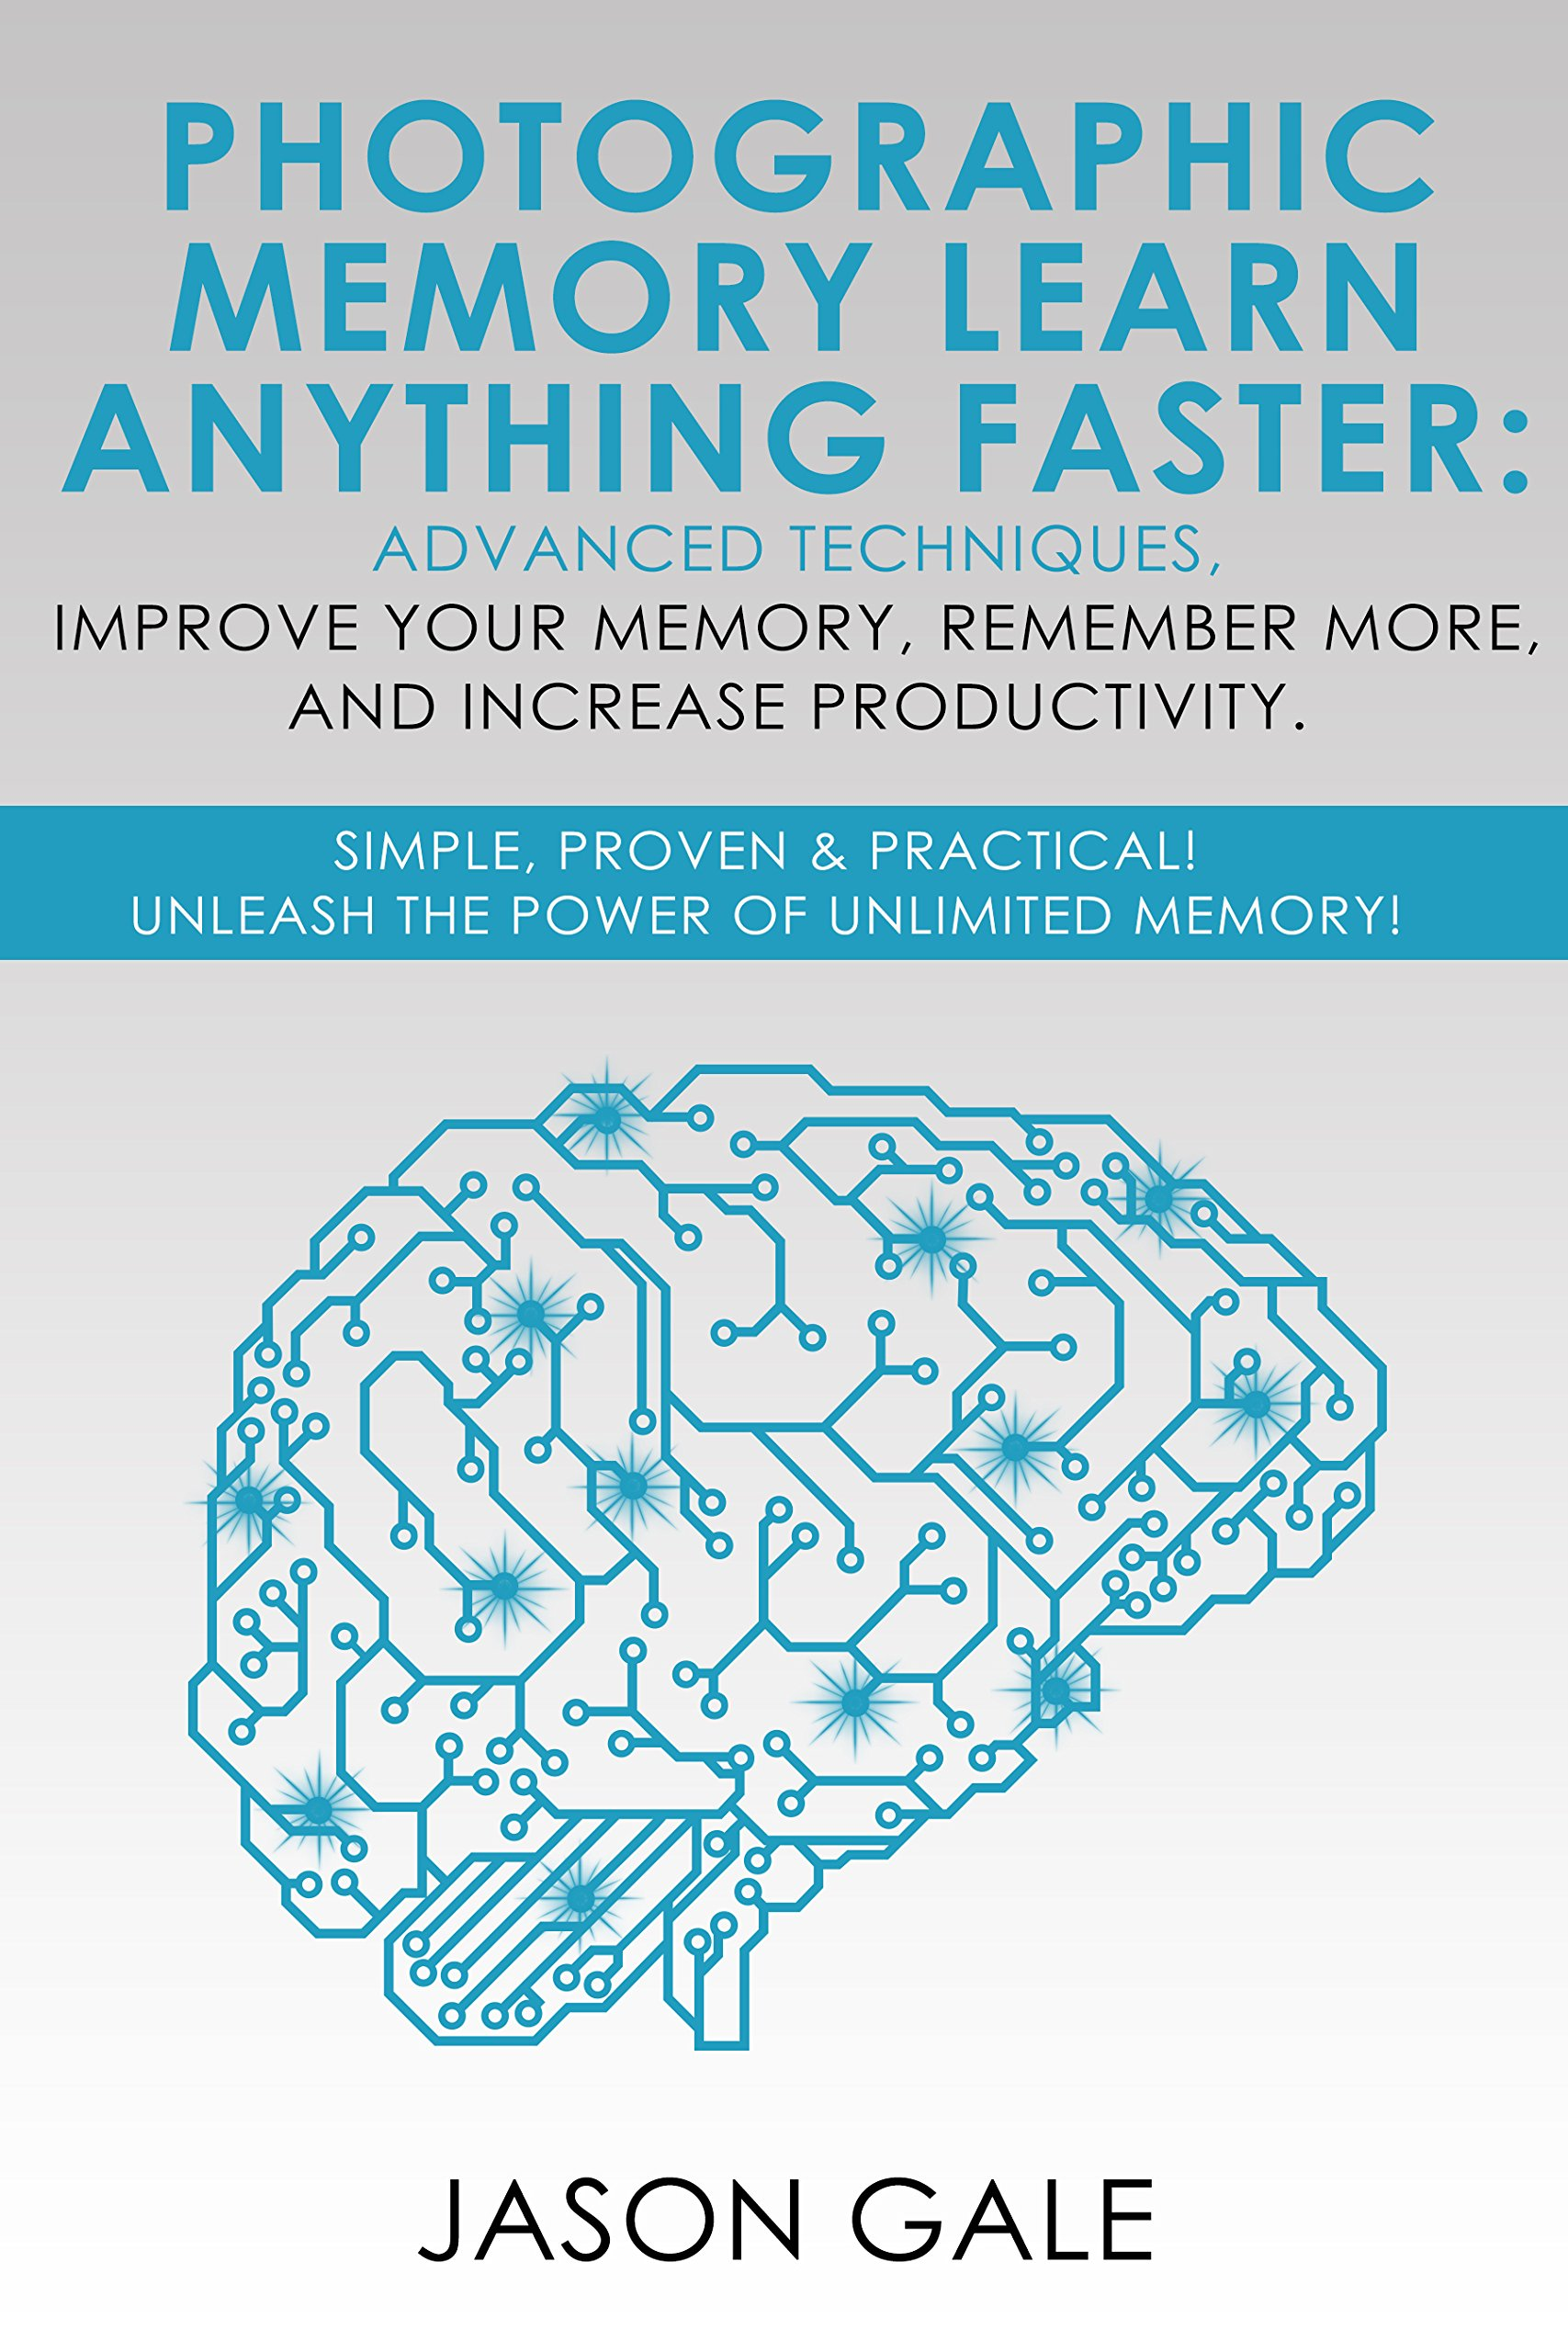 Photographic Memory Learn Anything Faster Advanced Techniques, Improve Your Memory, Remember More, And Increase Productivity: Simple, Proven, & Practical, ... Power of Unlimited Memory! por Jason Gale